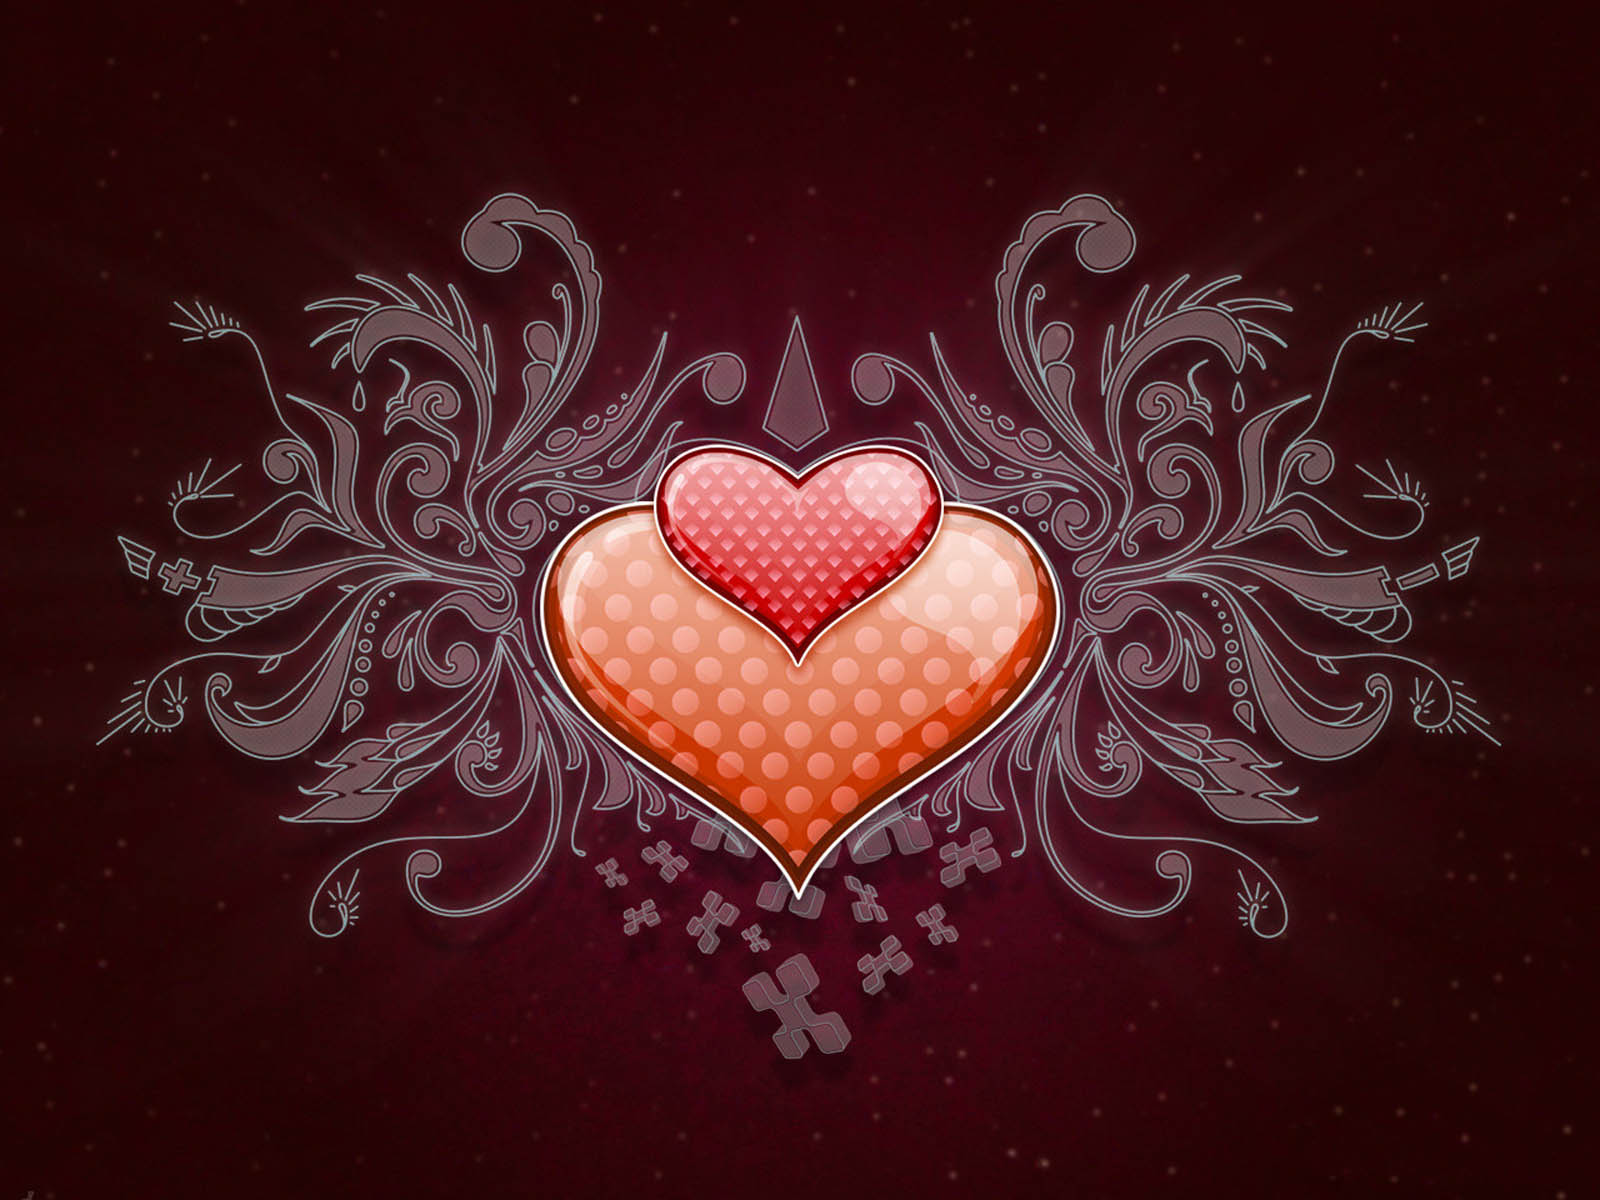 hearts desktop wallpaper - photo #19